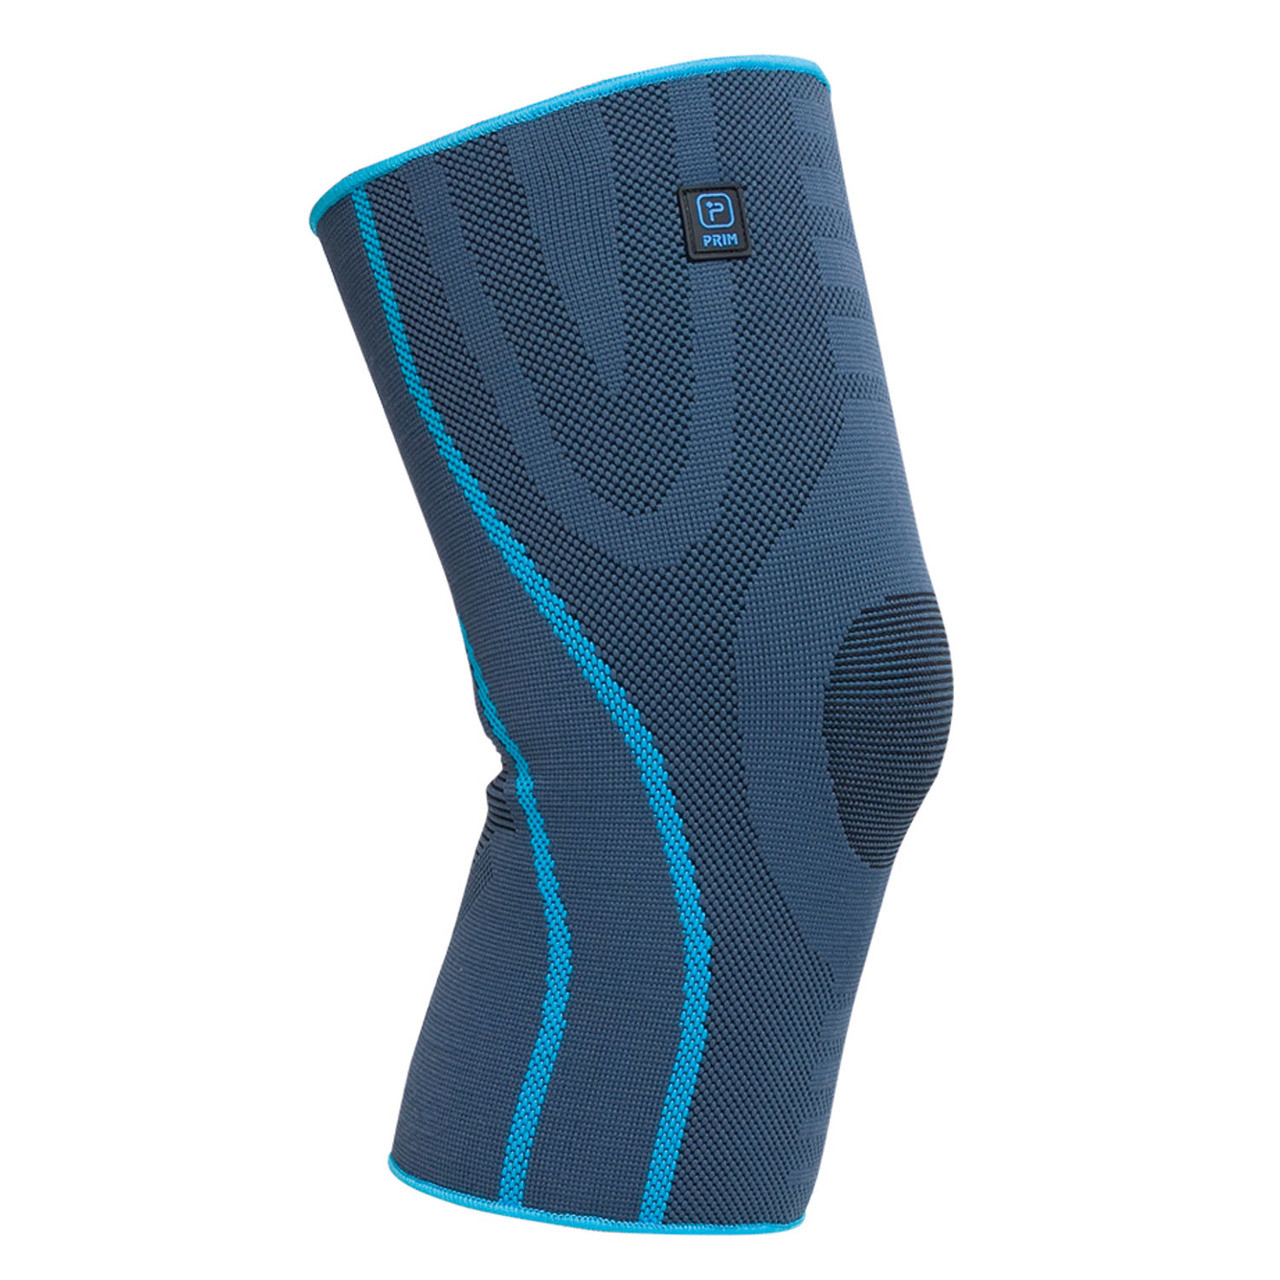 cfe55684cc Aqtivo Sport Elastic Knee Support. Loading zoom